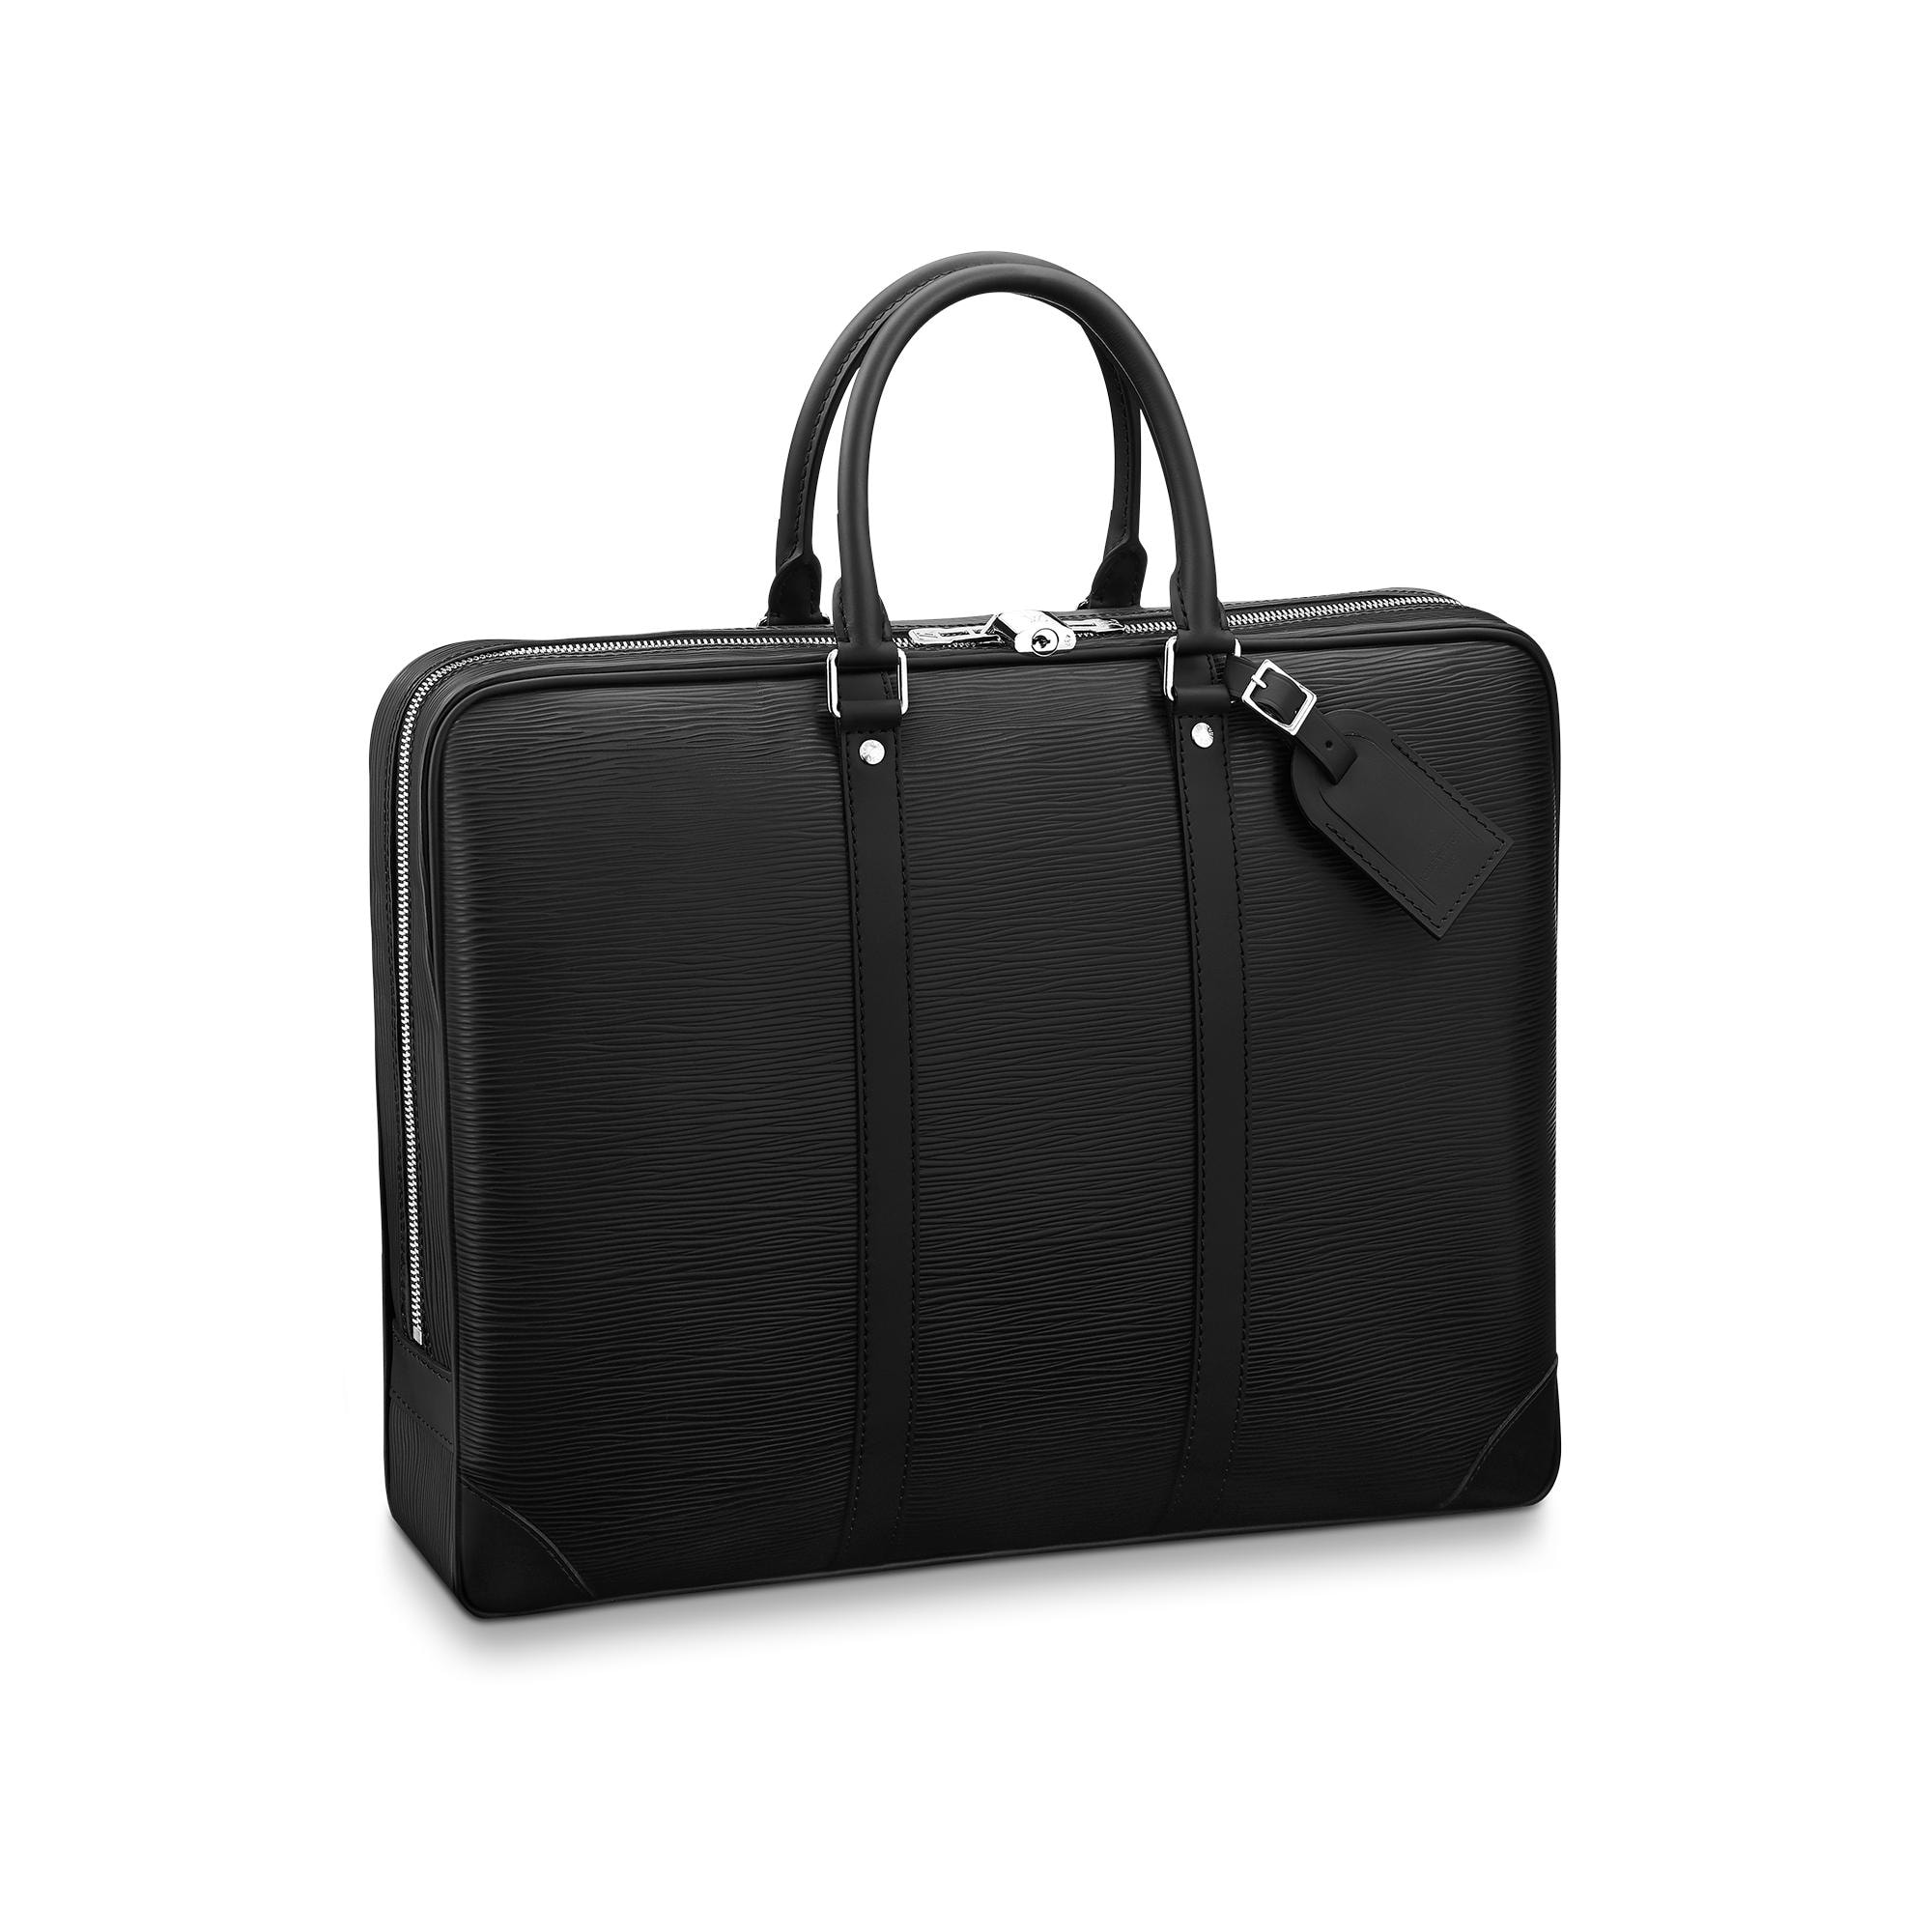 Porte Document Cuir Homme Porte Documents Voyage